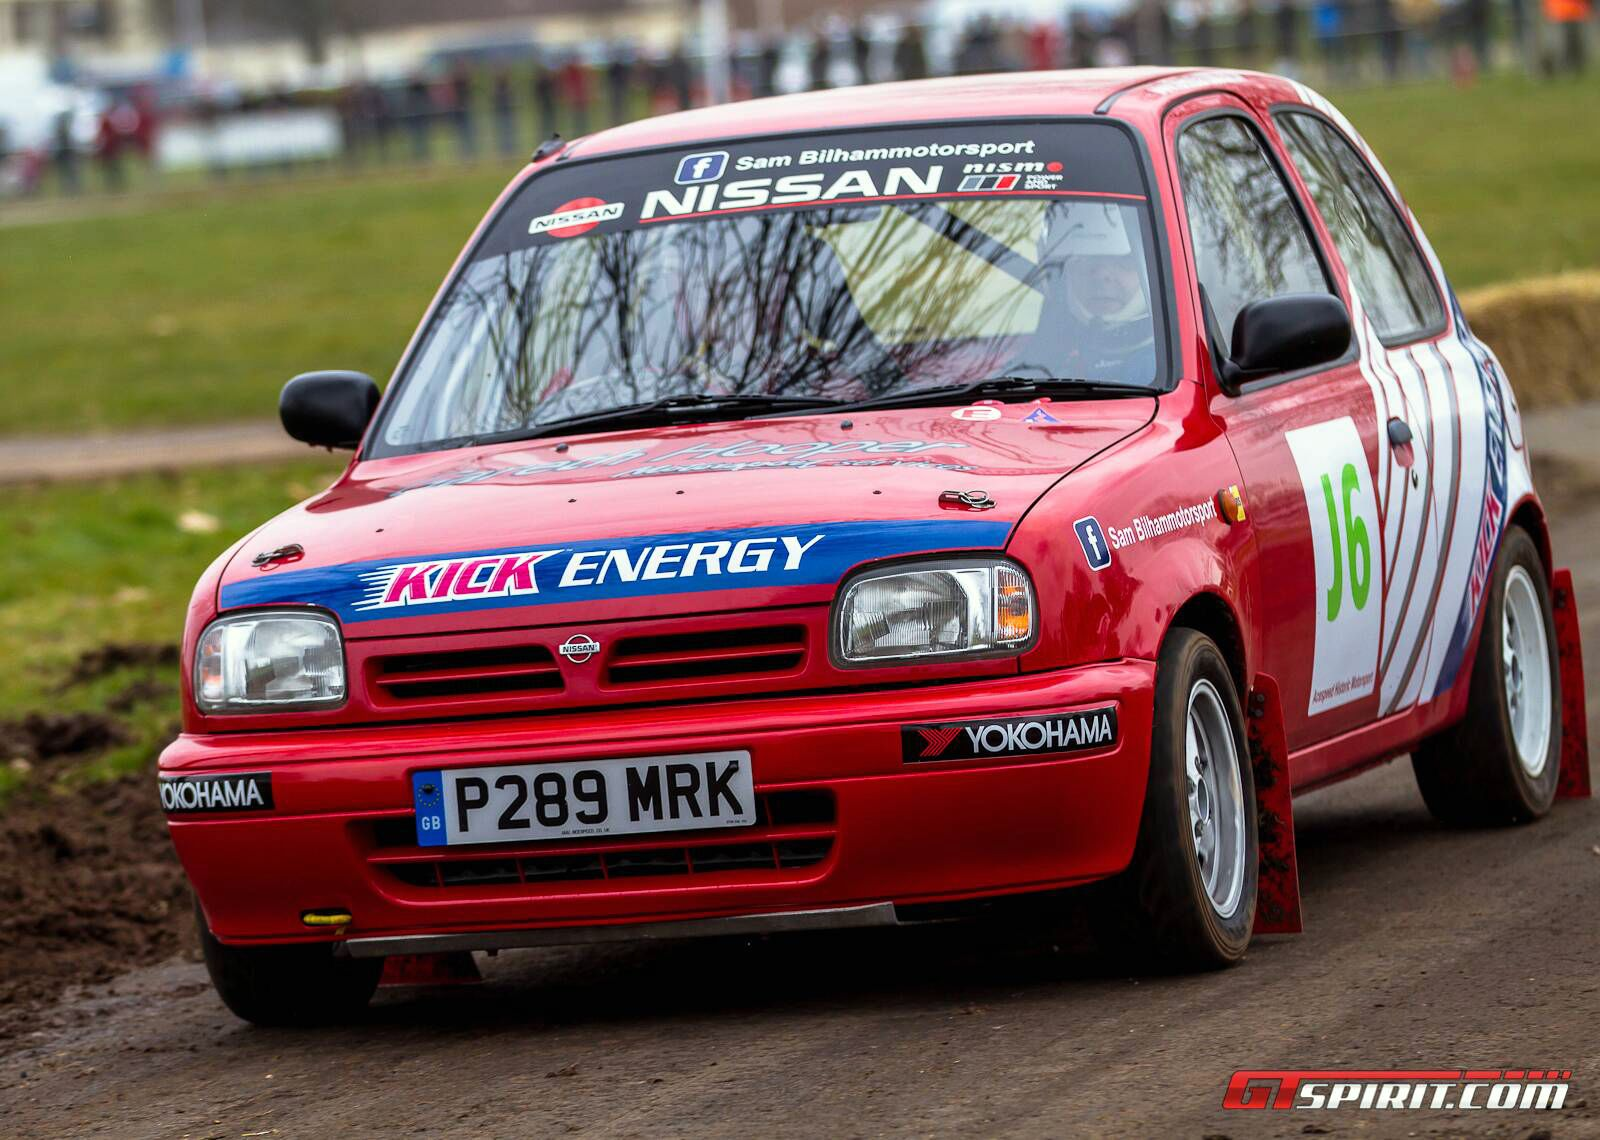 nissan micra k11 rally car classic cars pinterest rally car nissan and rally. Black Bedroom Furniture Sets. Home Design Ideas